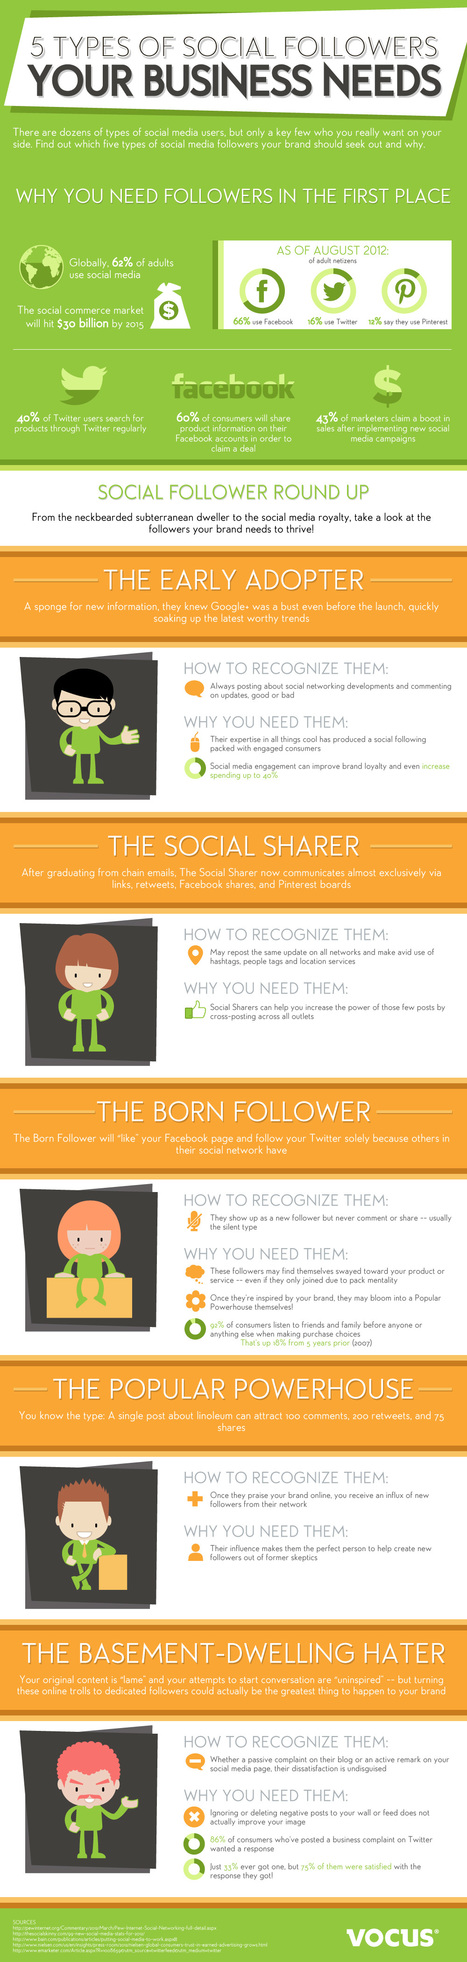 The 5 Types of Social Followers that Every Business Needs [INFOGRAPHIC] | Social Media Savvy | Scoop.it